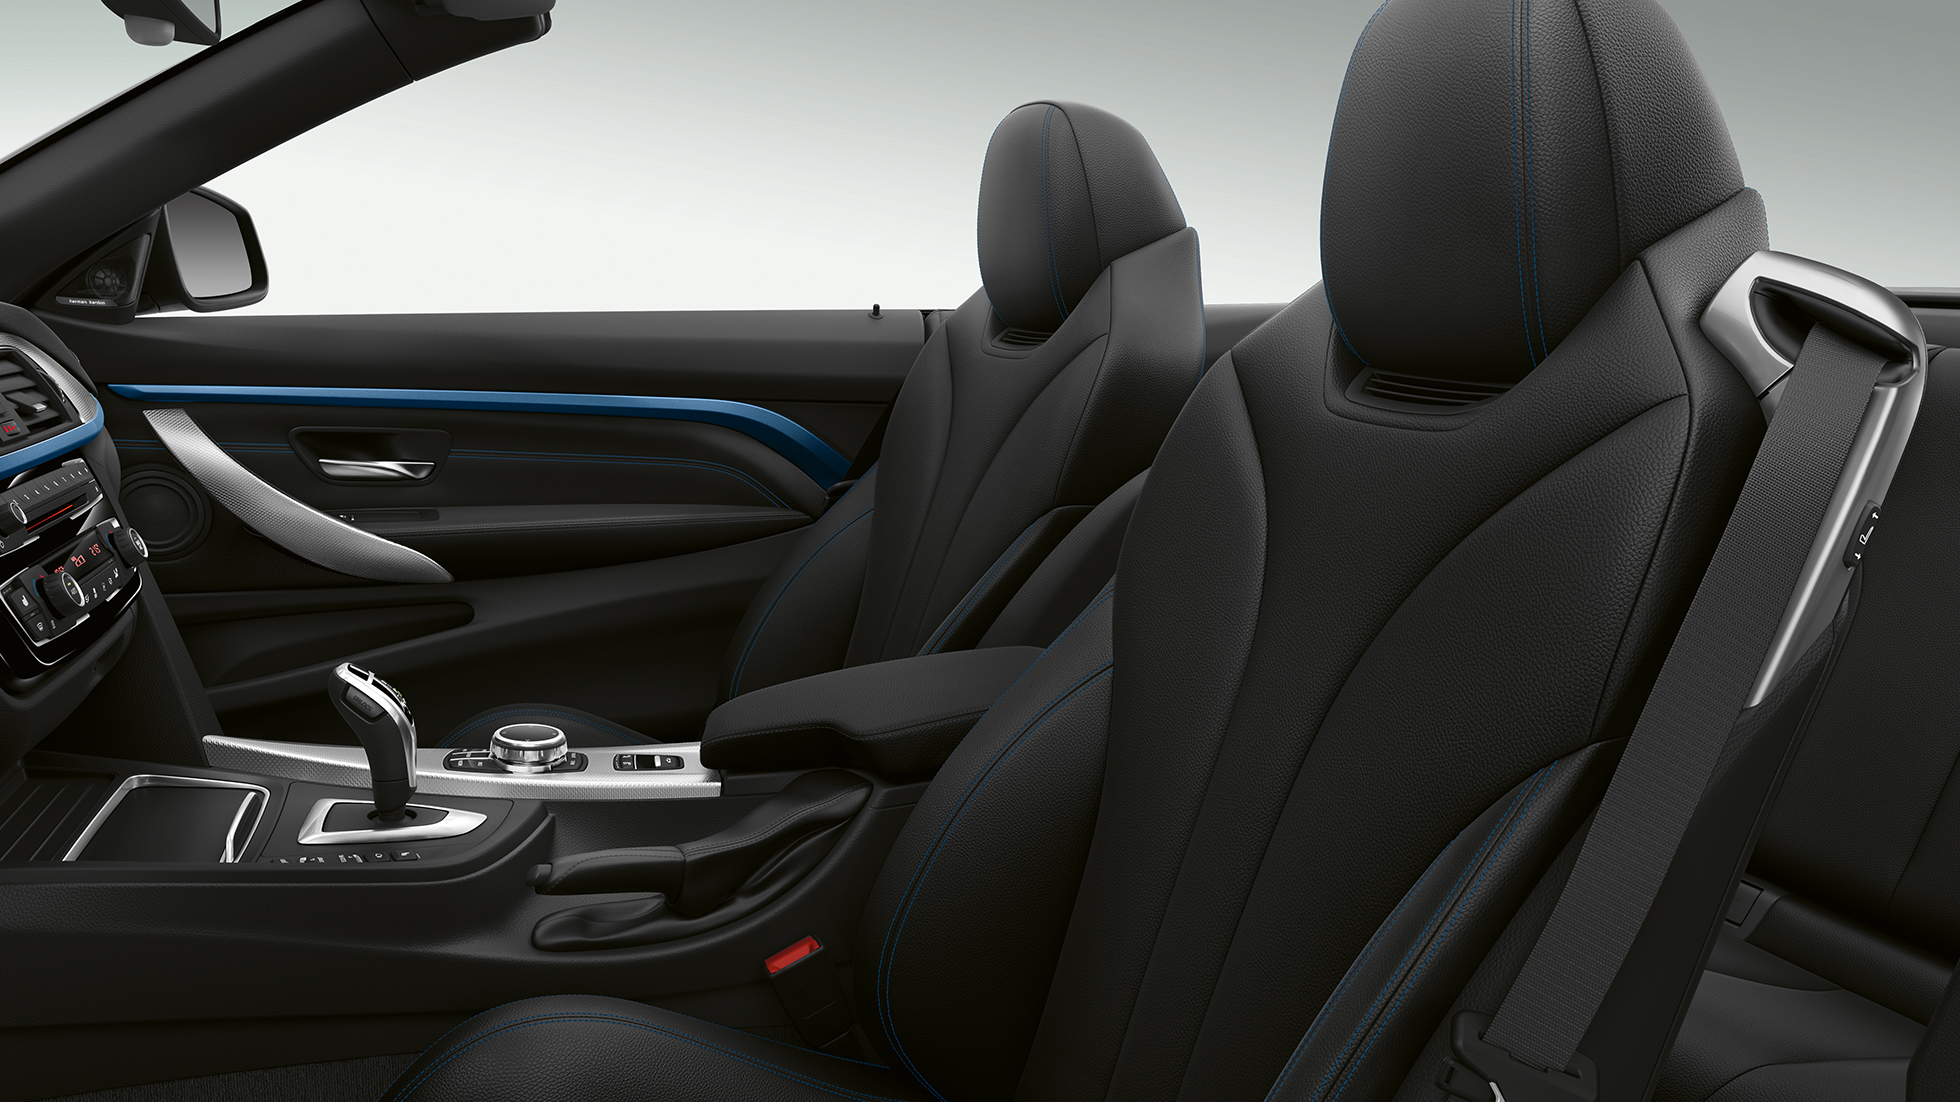 BMW 4 Series Convertible, Model M Sport interior